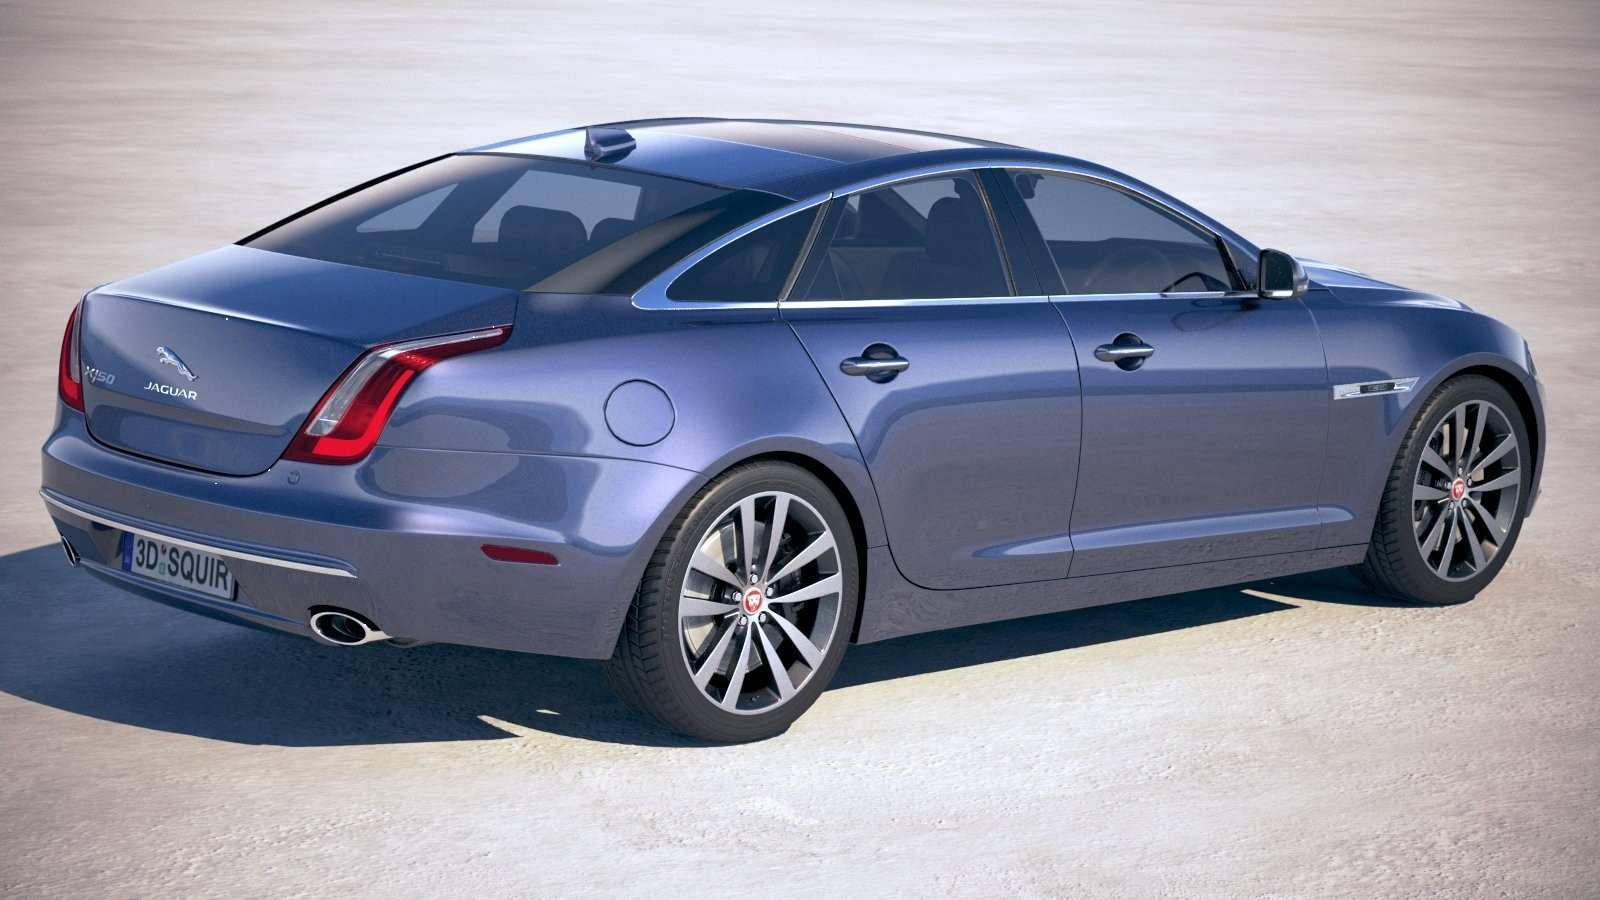 30 The 2019 Jaguar Xj 50 Images